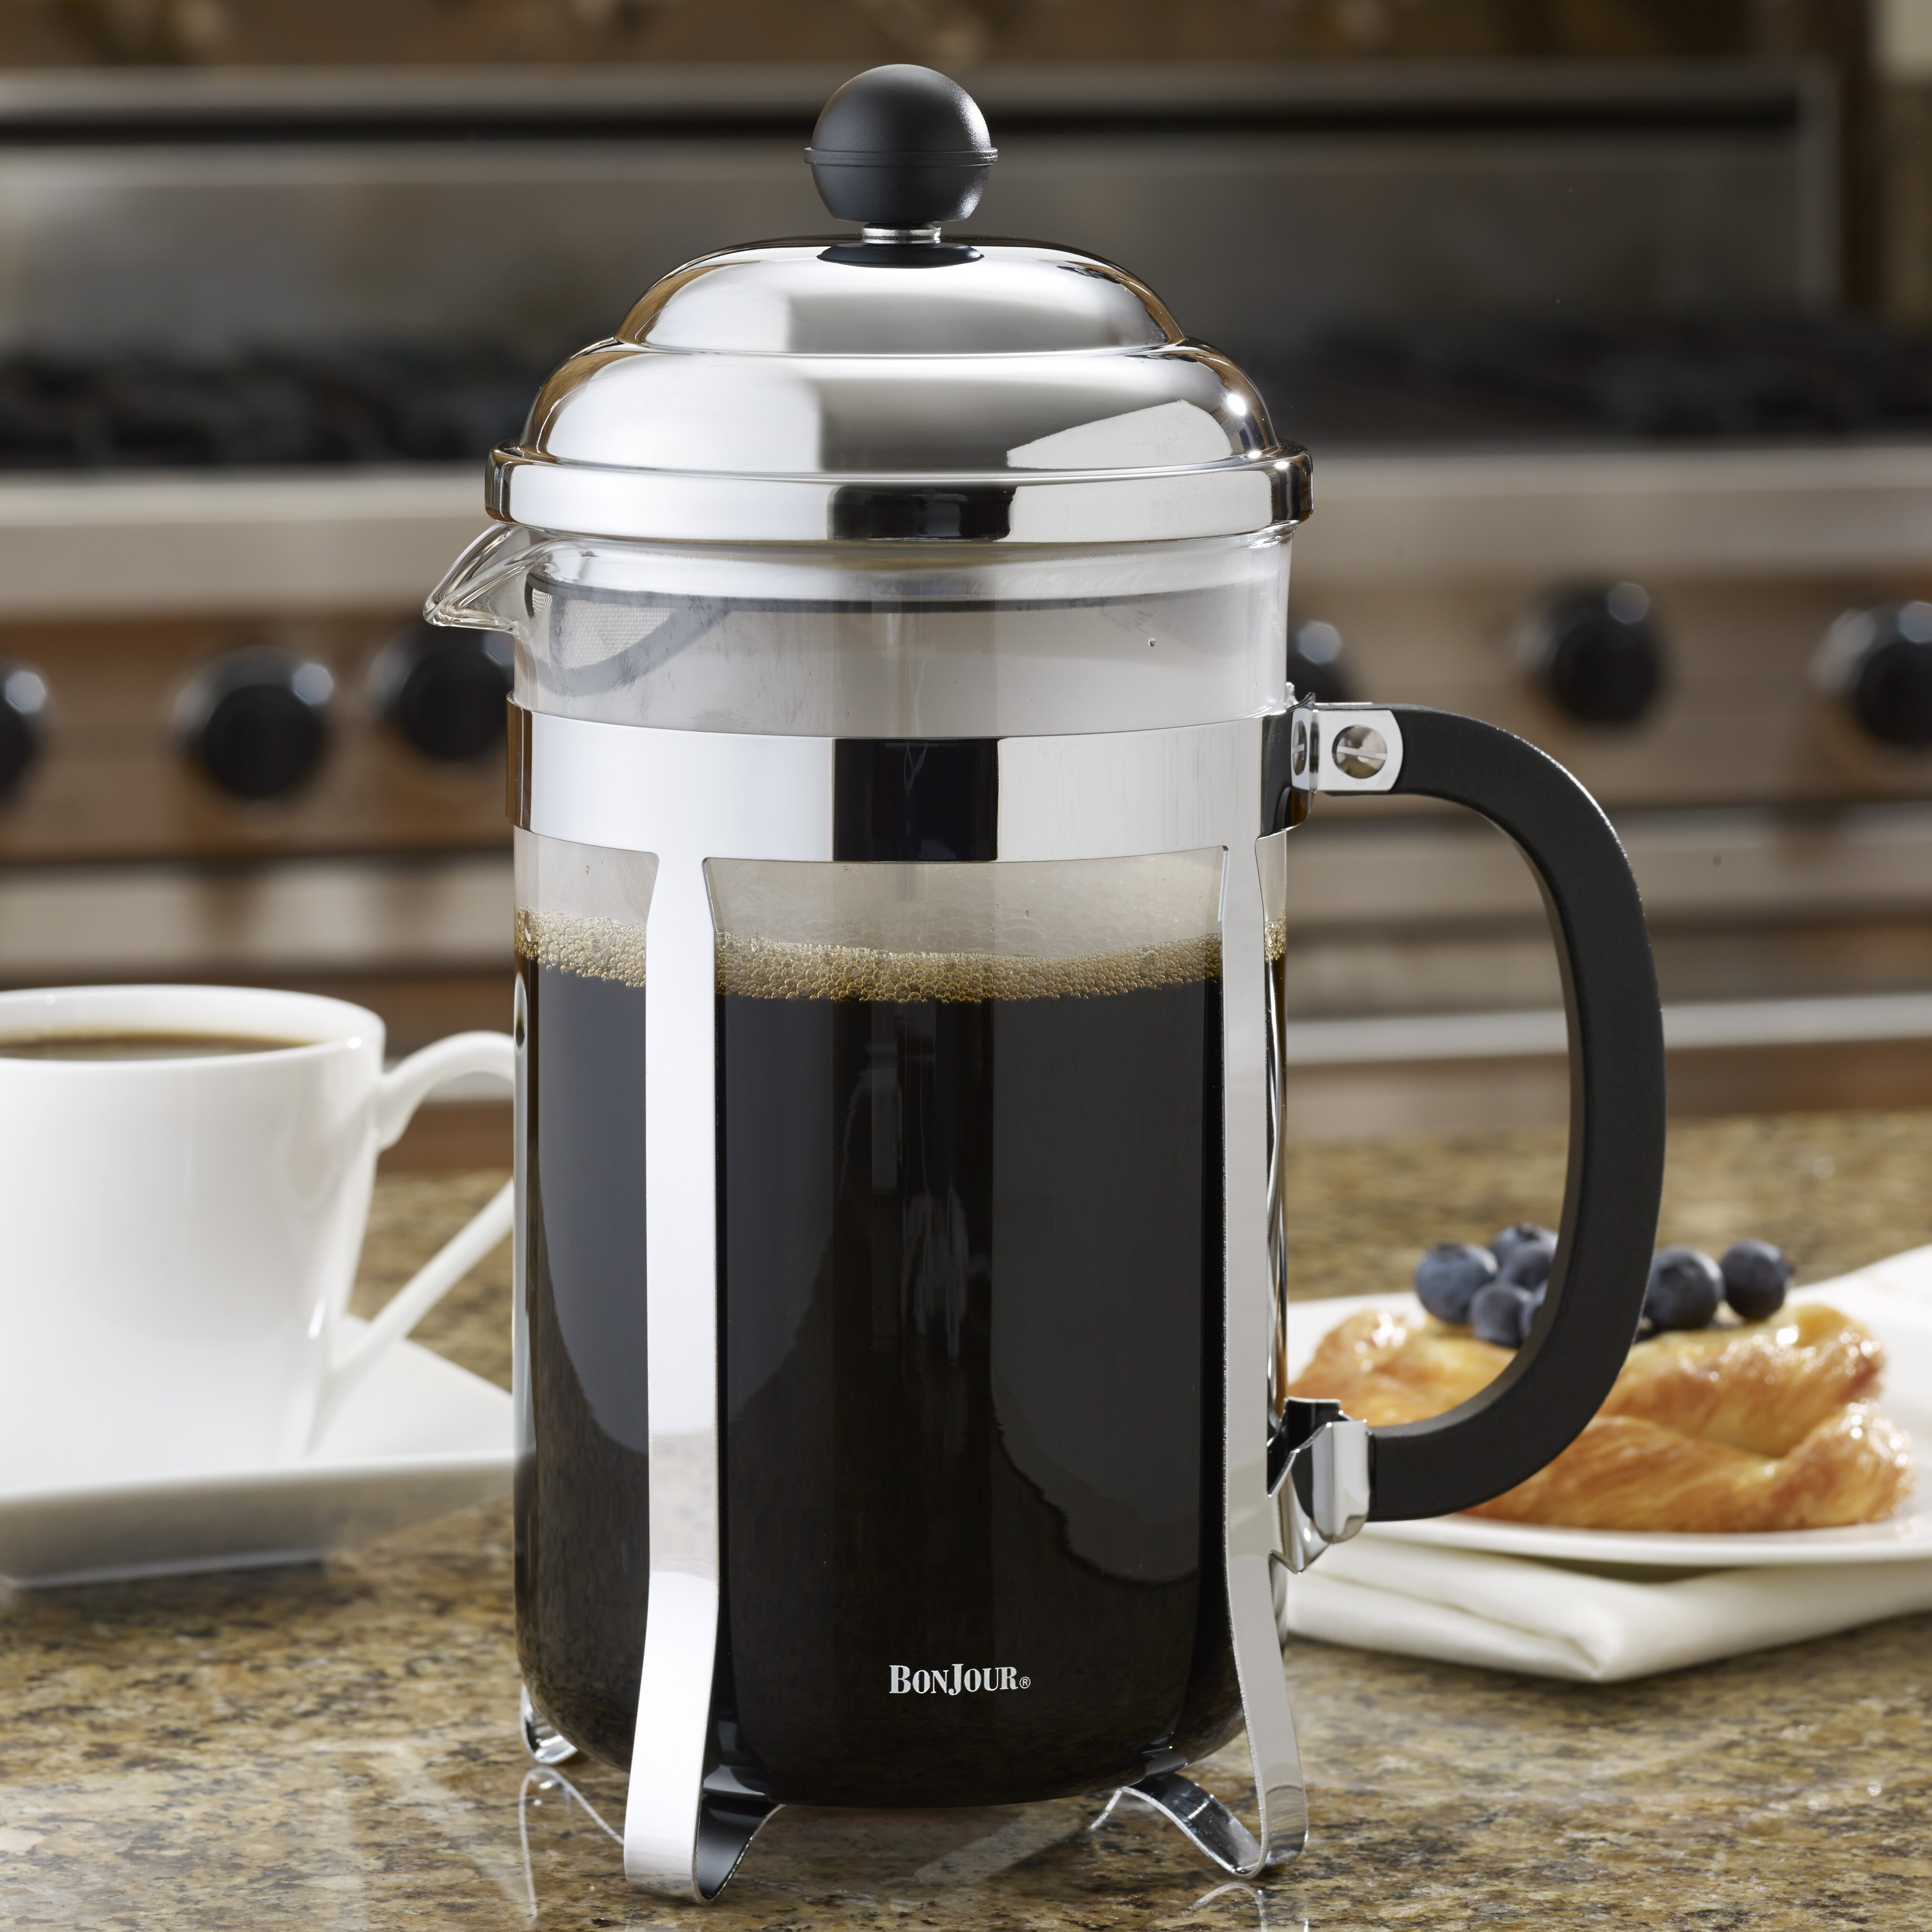 Bed bath beyond french press - Bathroom Swivel Sweeper Bed Bath And Beyond Keurig Coffee Makers At Bed Bath And Beyond